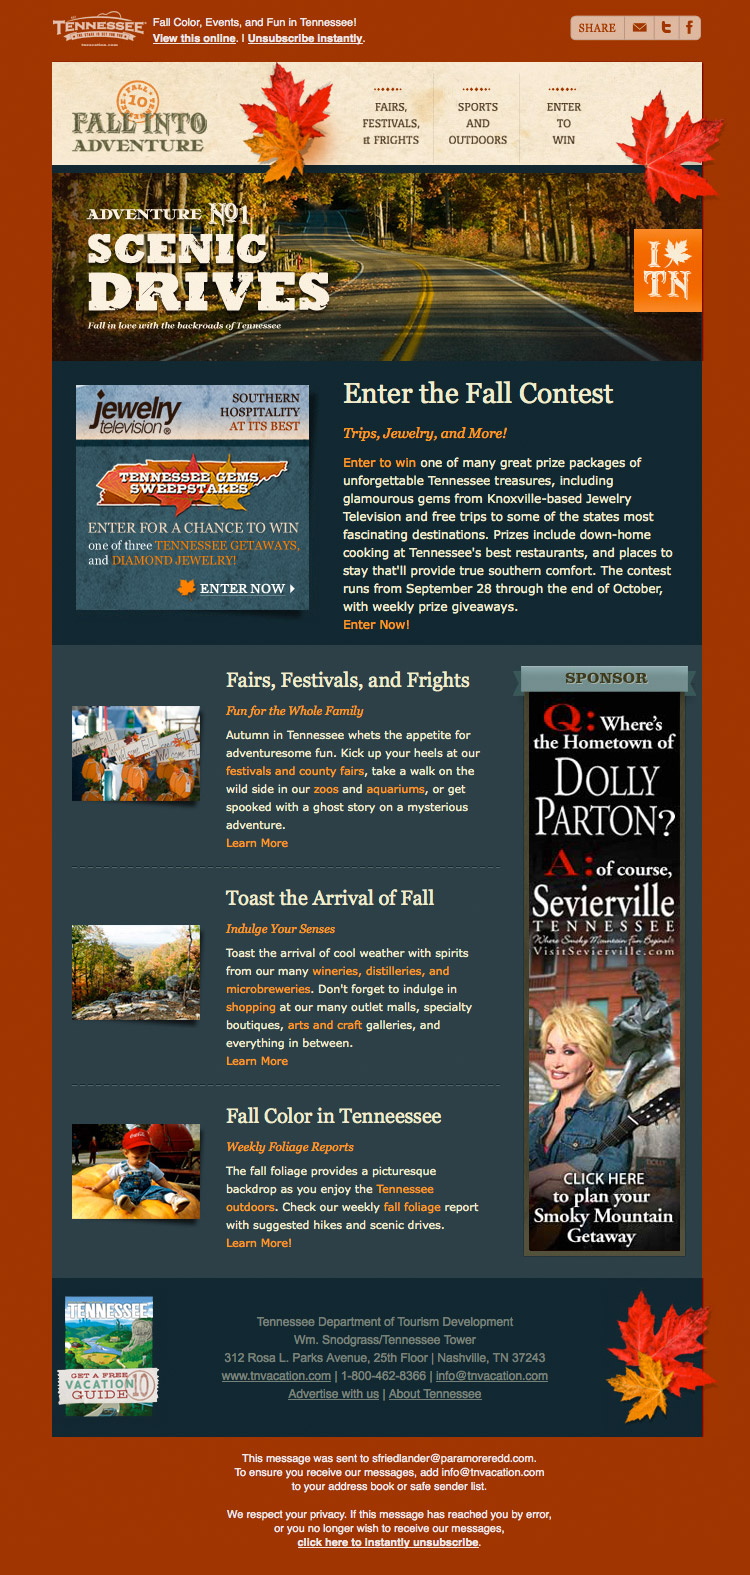 Fall into adventure tennessee promo email html email gallery for Newsletter design inspiration